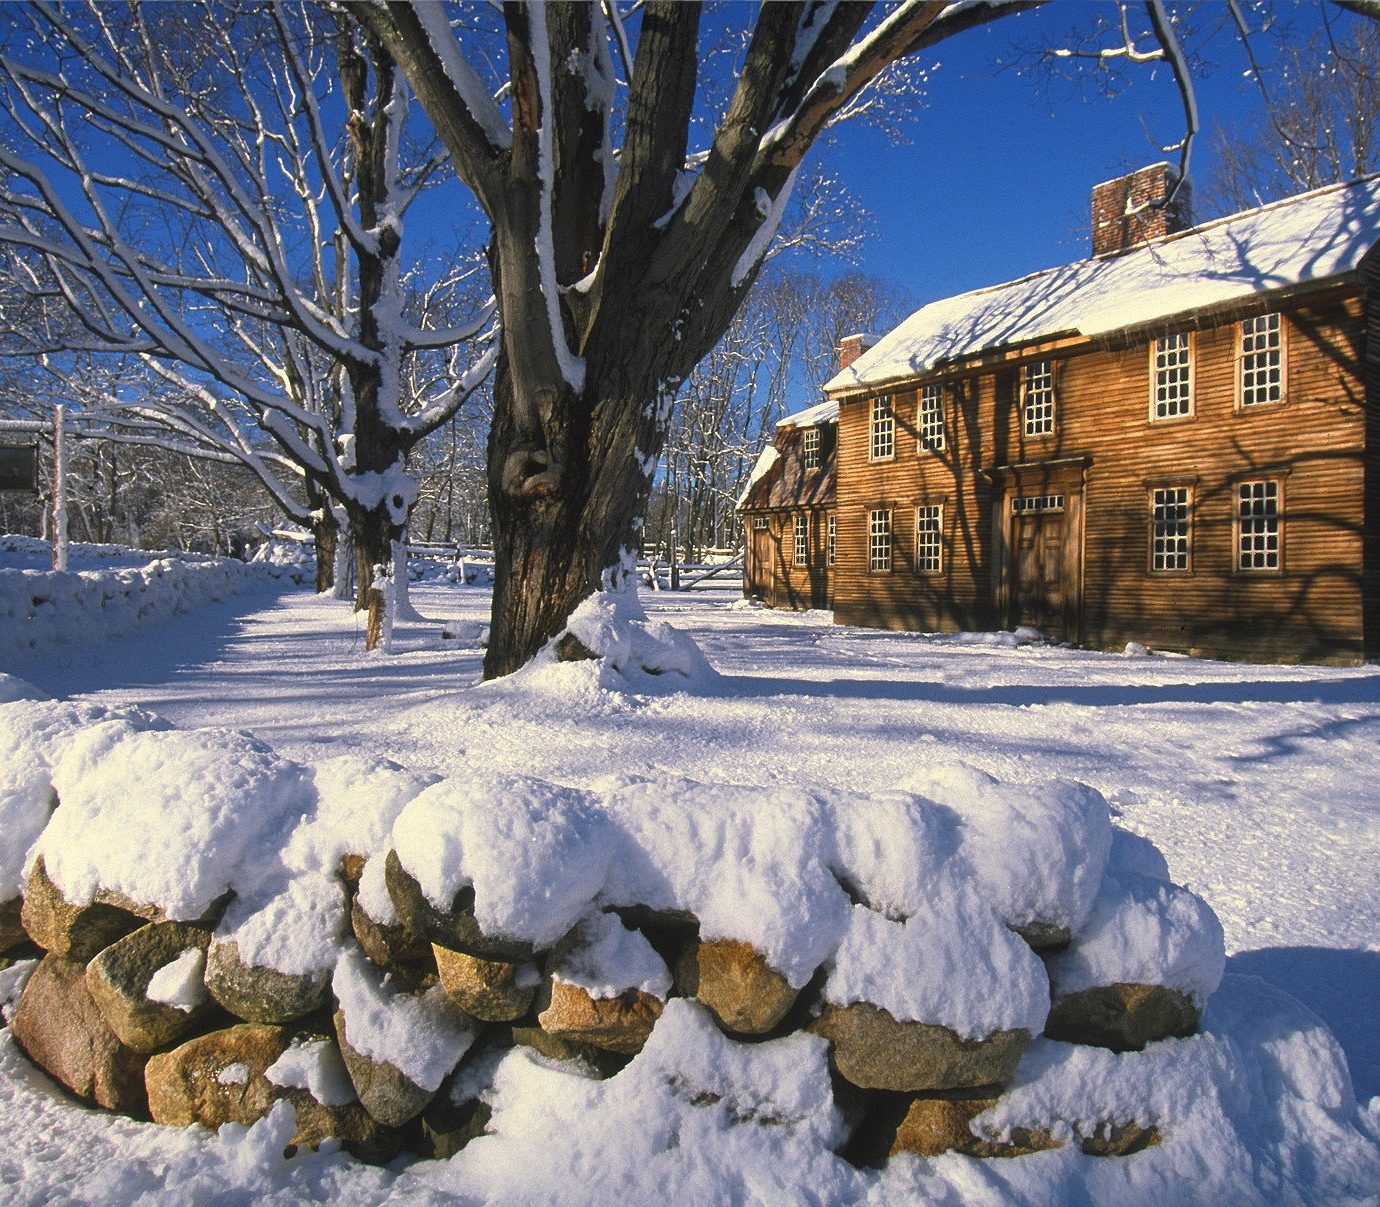 Weekend Getaways snow tree outdoor Winter blue sky freezing house home frost log cabin ice landscape facade evening branch surrounded